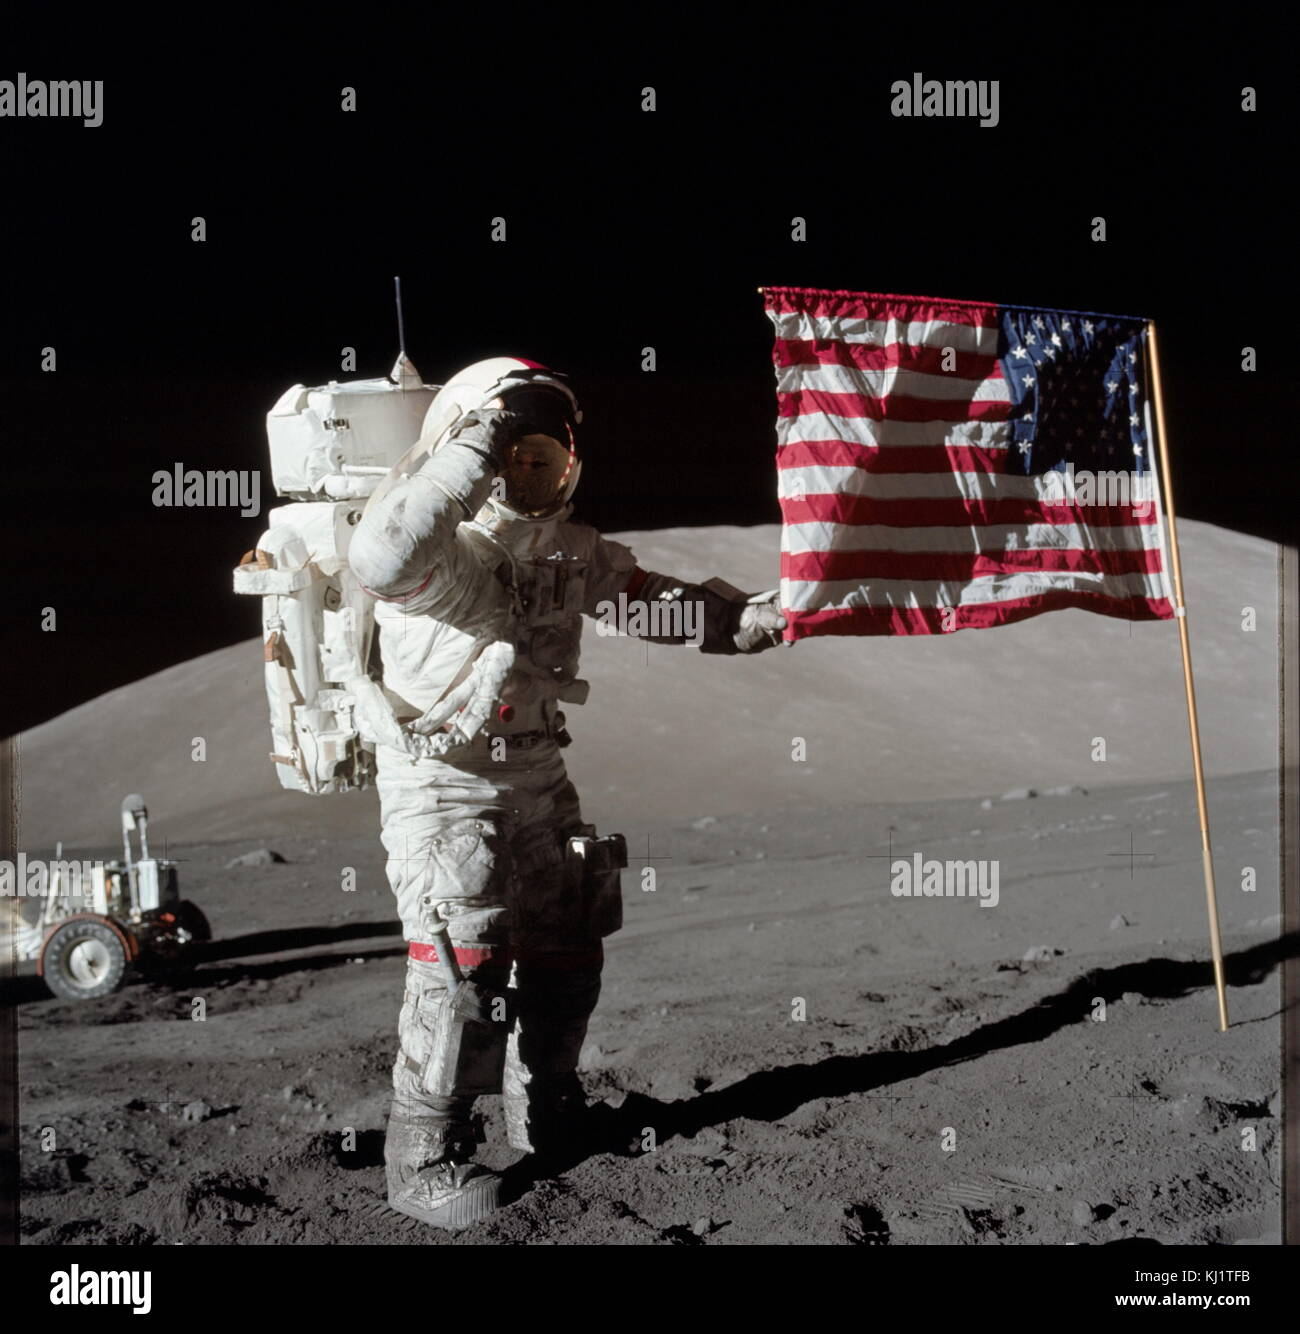 Apollo 17 mission commander Eugene Cernan after his second moonwalk of the mission. Apollo 17 was the final mission - Stock Image